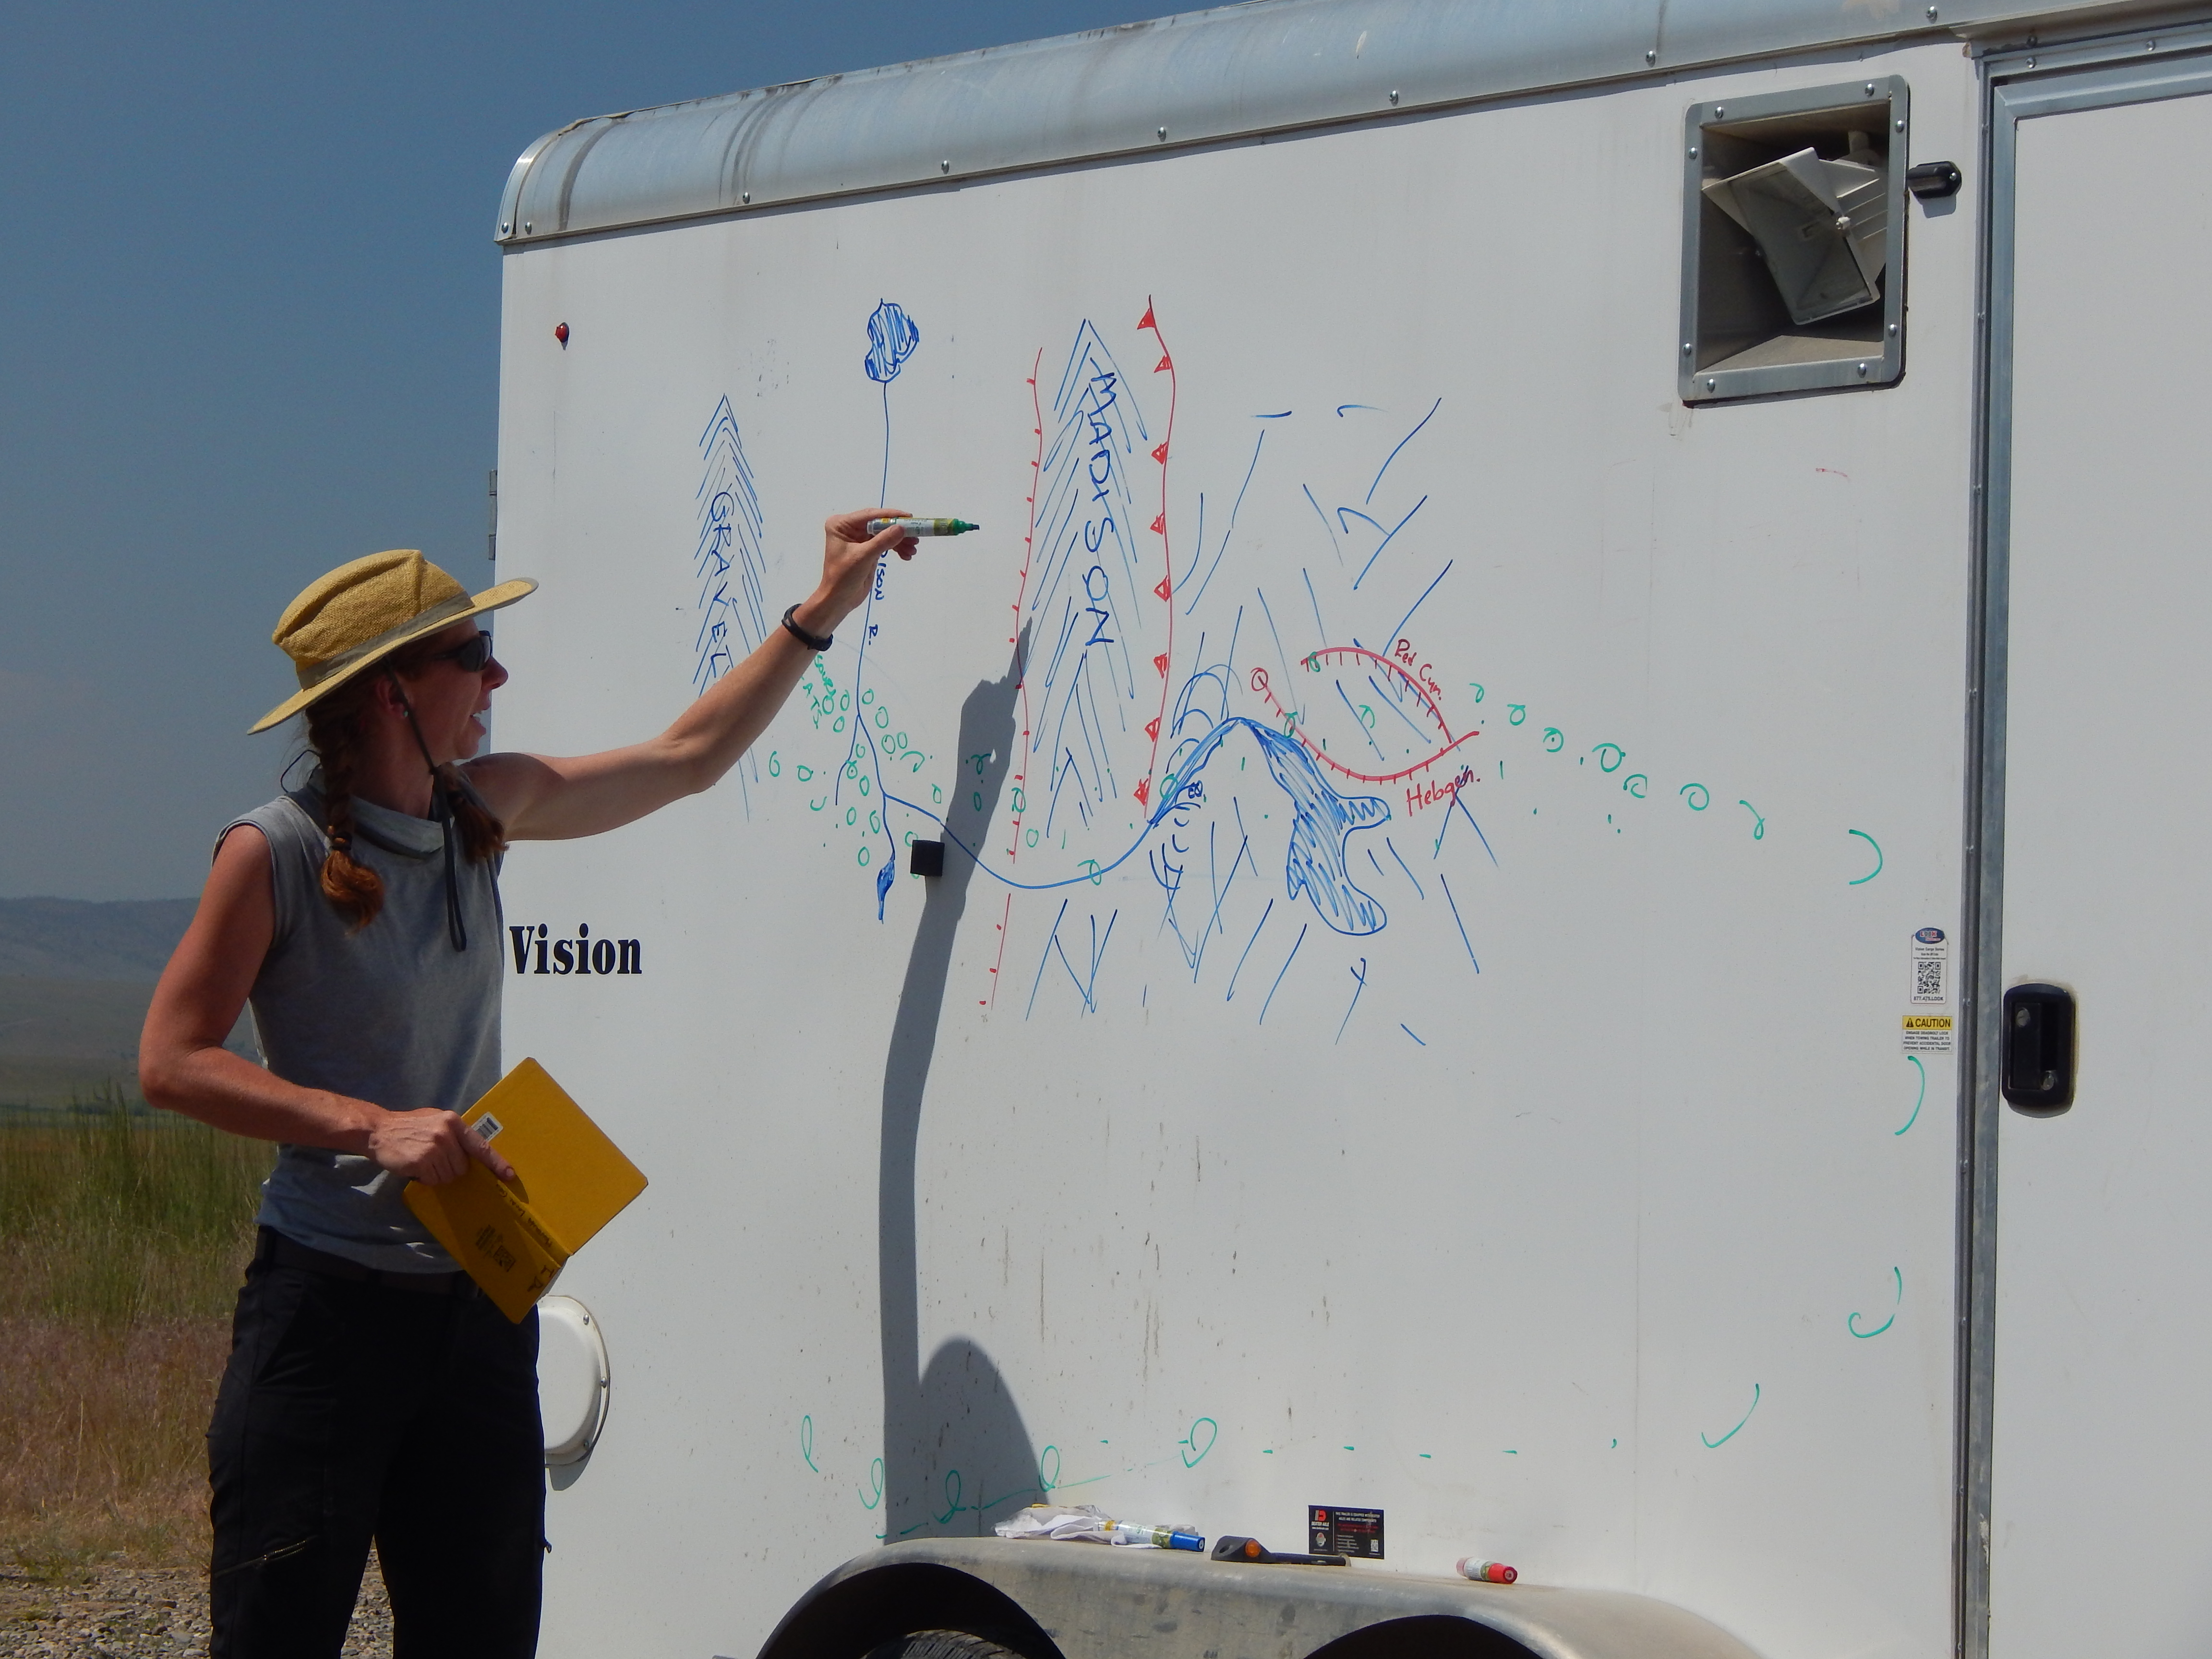 Dr. Jean Dixon delivering a lecture in the field using a trailer as a white board